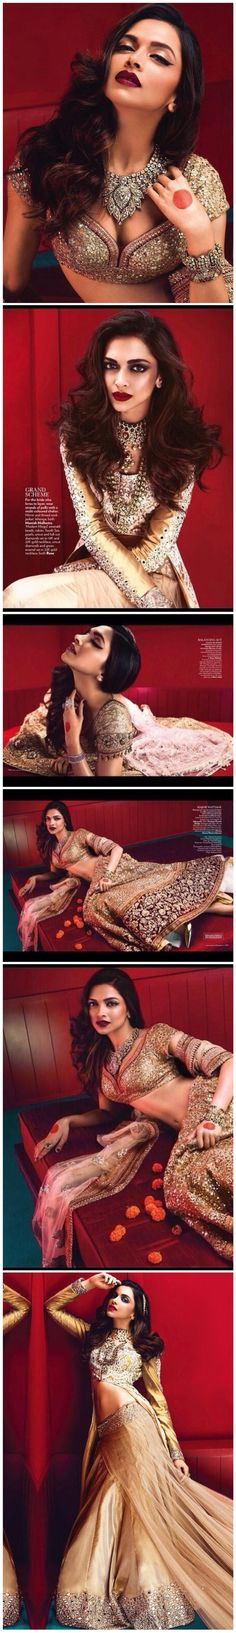 Here's an exclusive look at Deepika Padukone on the June cover of VOGUE India. Especially love the second image. Indian Celebrities, Bollywood Celebrities, Bollywood Fashion, Bollywood Actress, Bollywood Makeup, Bollywood Jewelry, Deepika Padukone, Indian Dresses, Indian Outfits